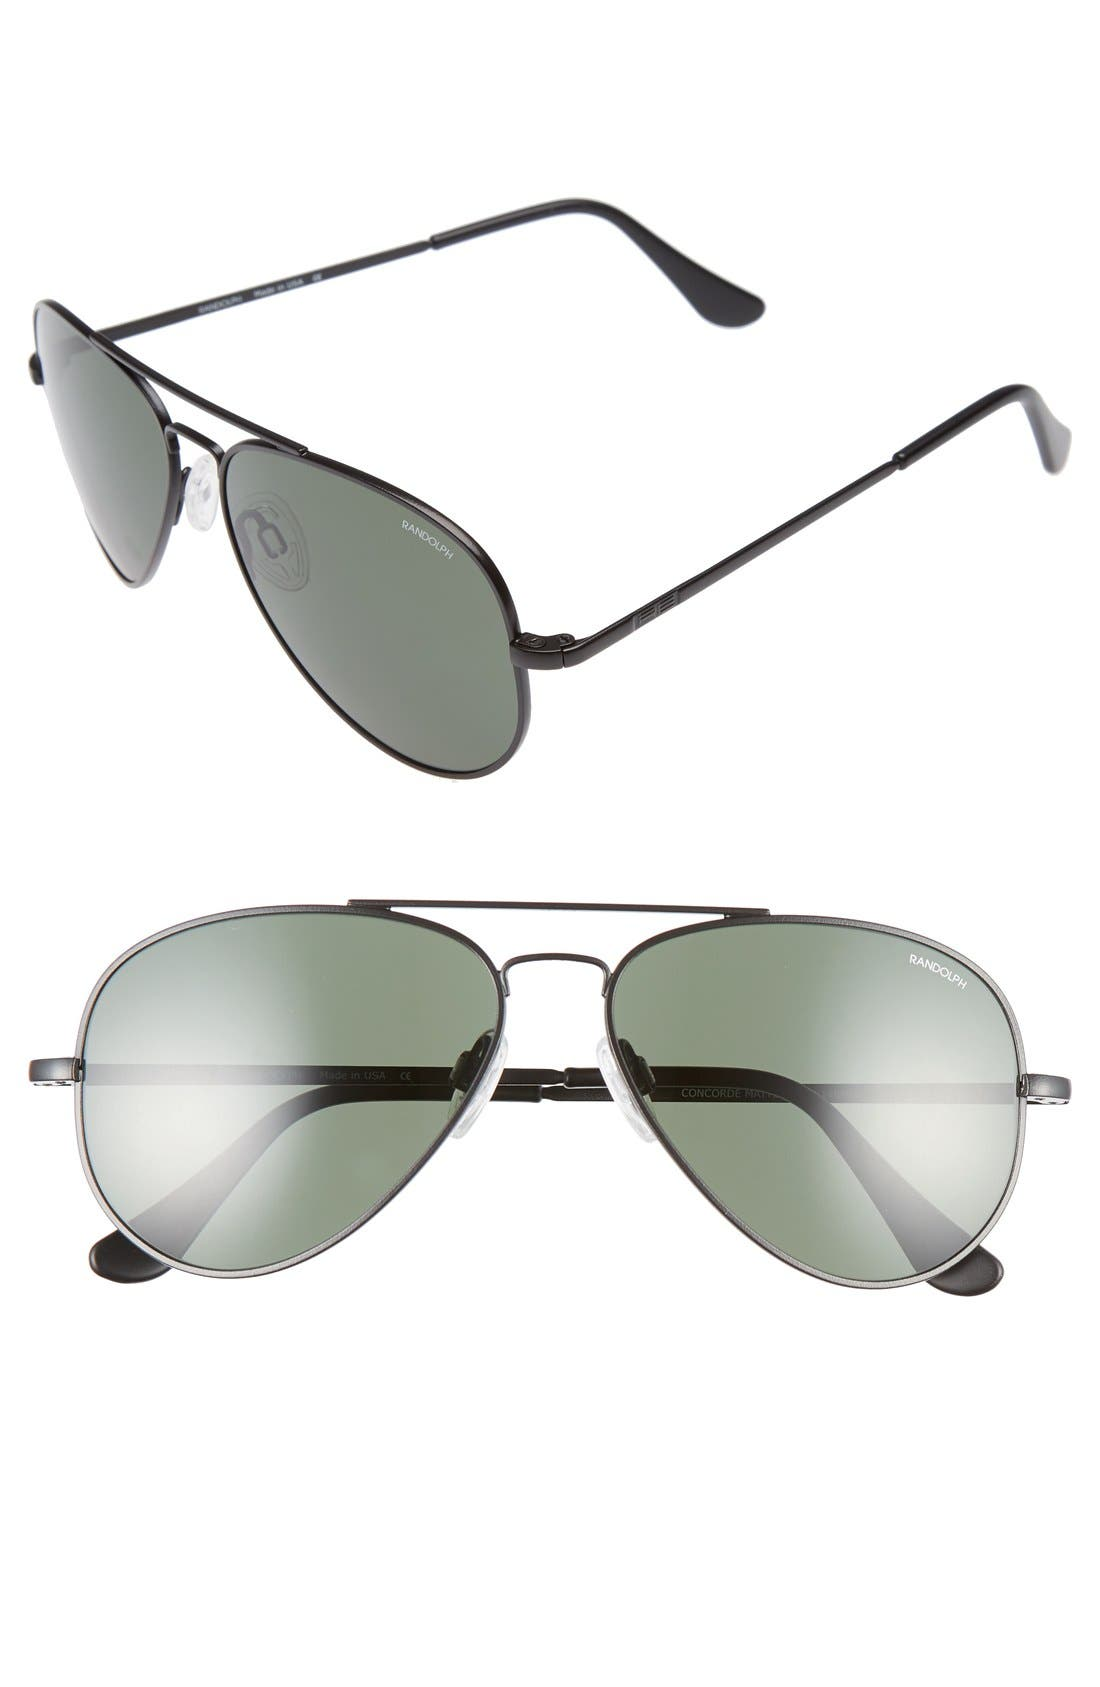 Main Image - Randolph Engineering 'Concorde' 57mm Aviator Sunglasses